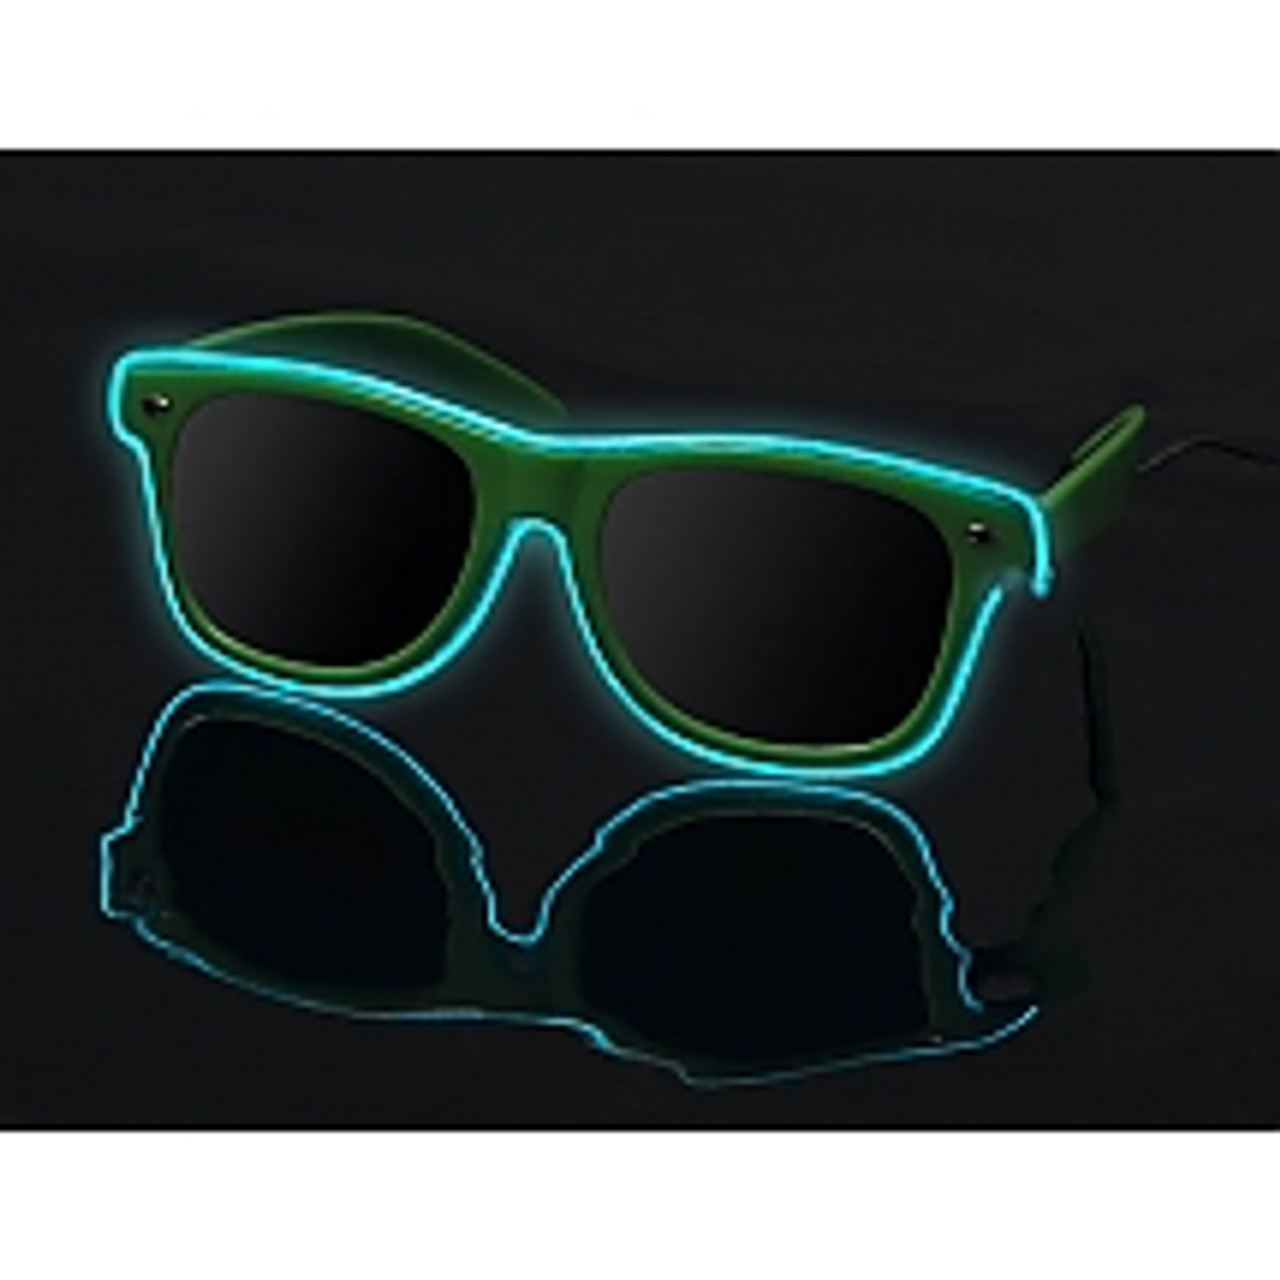 LED LIGHT GLOWING PREMIUM LED SUNGLASSES WHITE